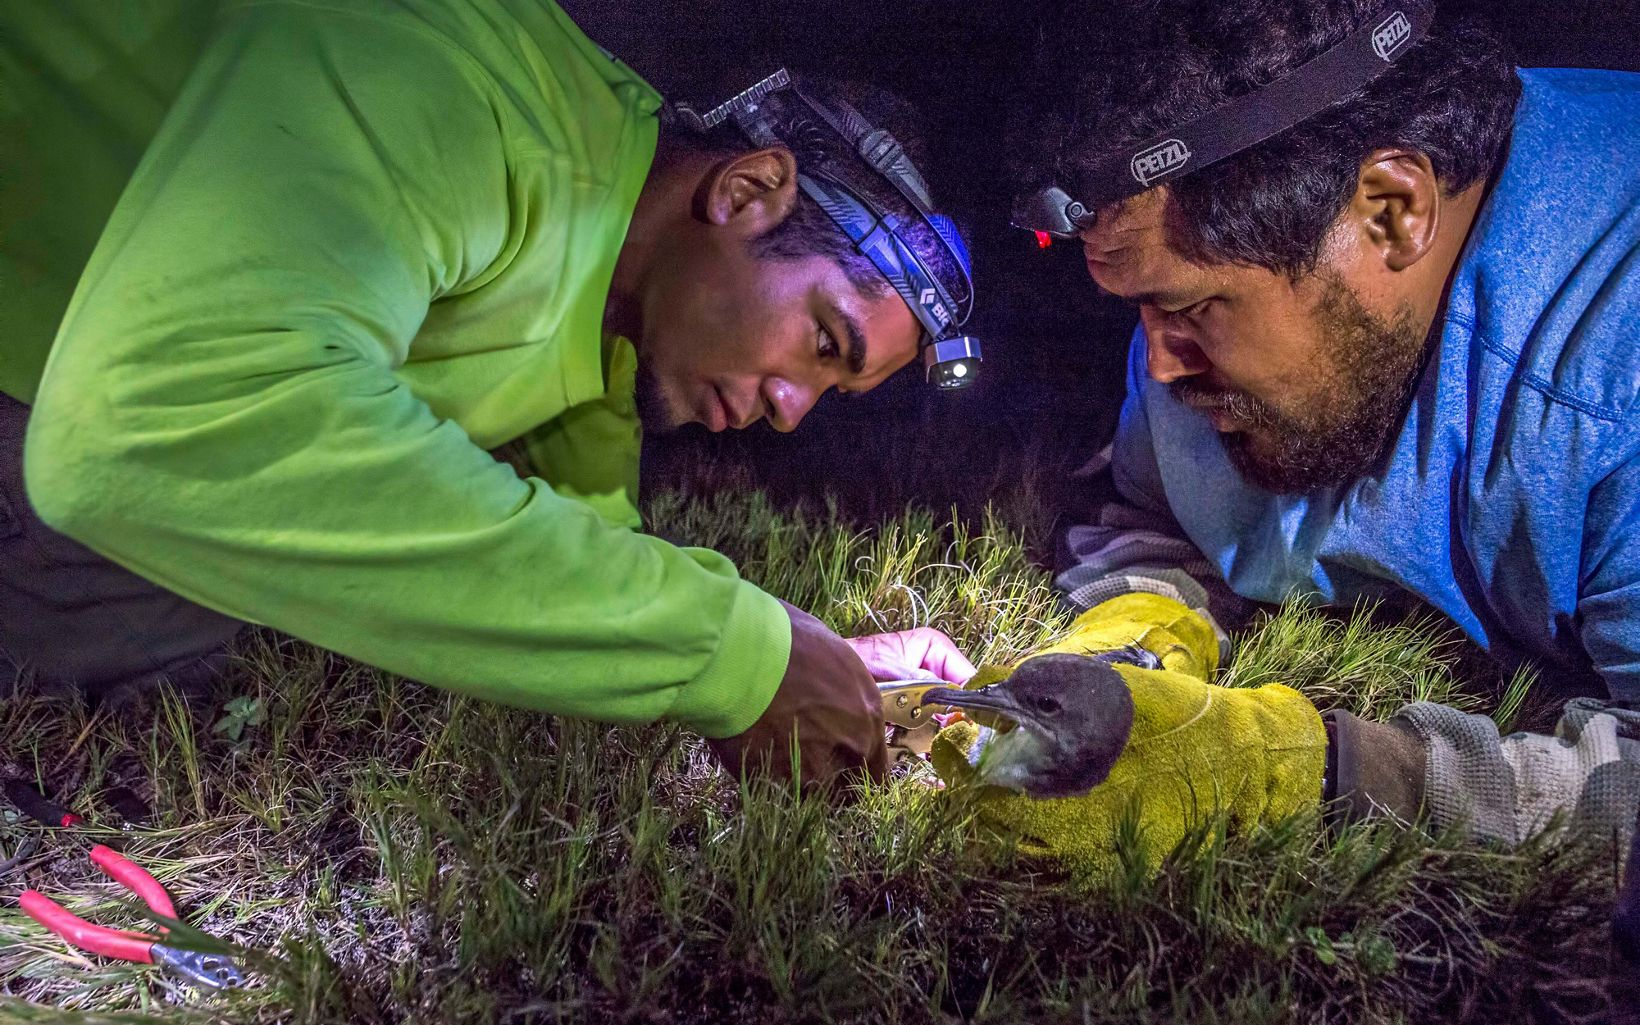 A volunteer holds a bird while another attaches a band